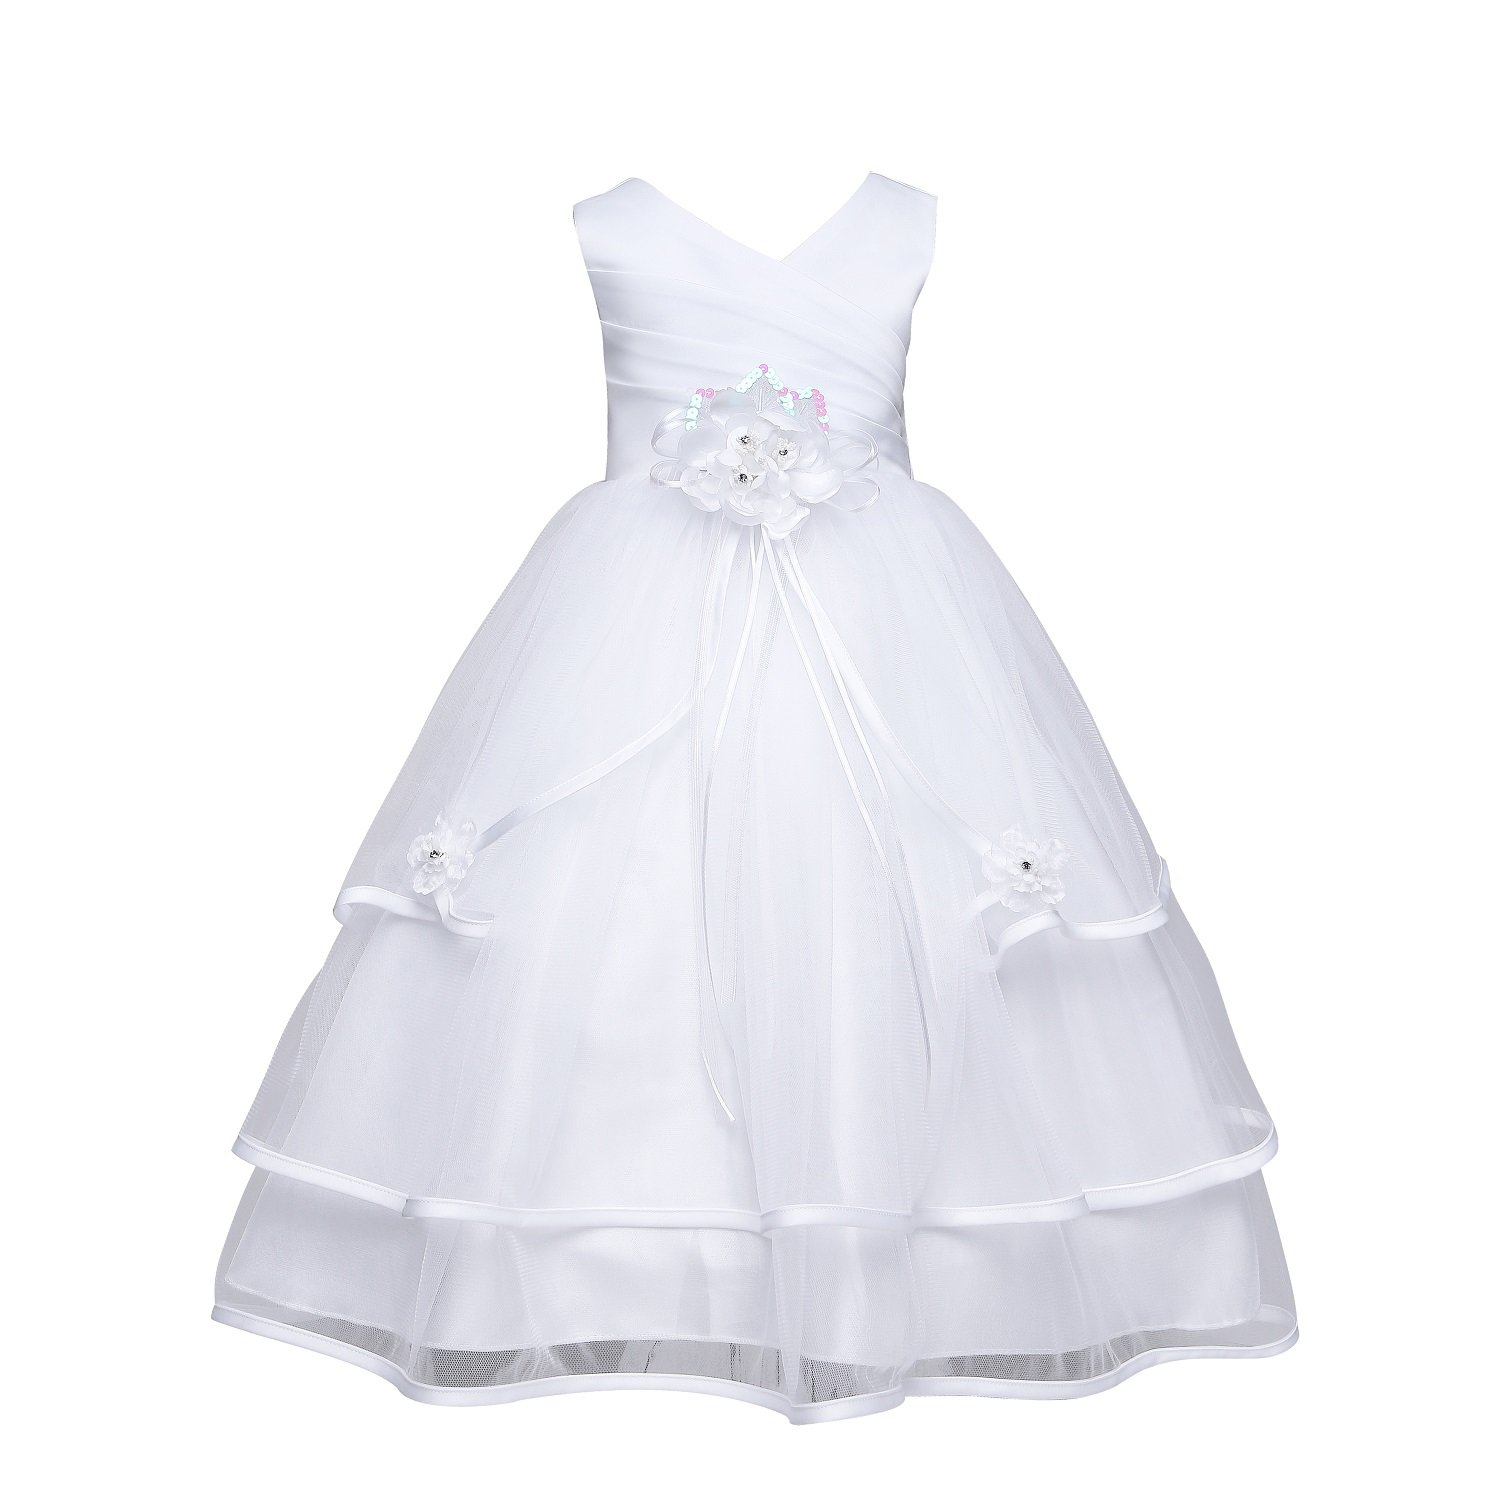 08baeac64 The elegant dress is made out of quality satin and soft tulle. The dress is  decorated with delicate flower and ribbon over the waist and two beaded  flowers ...